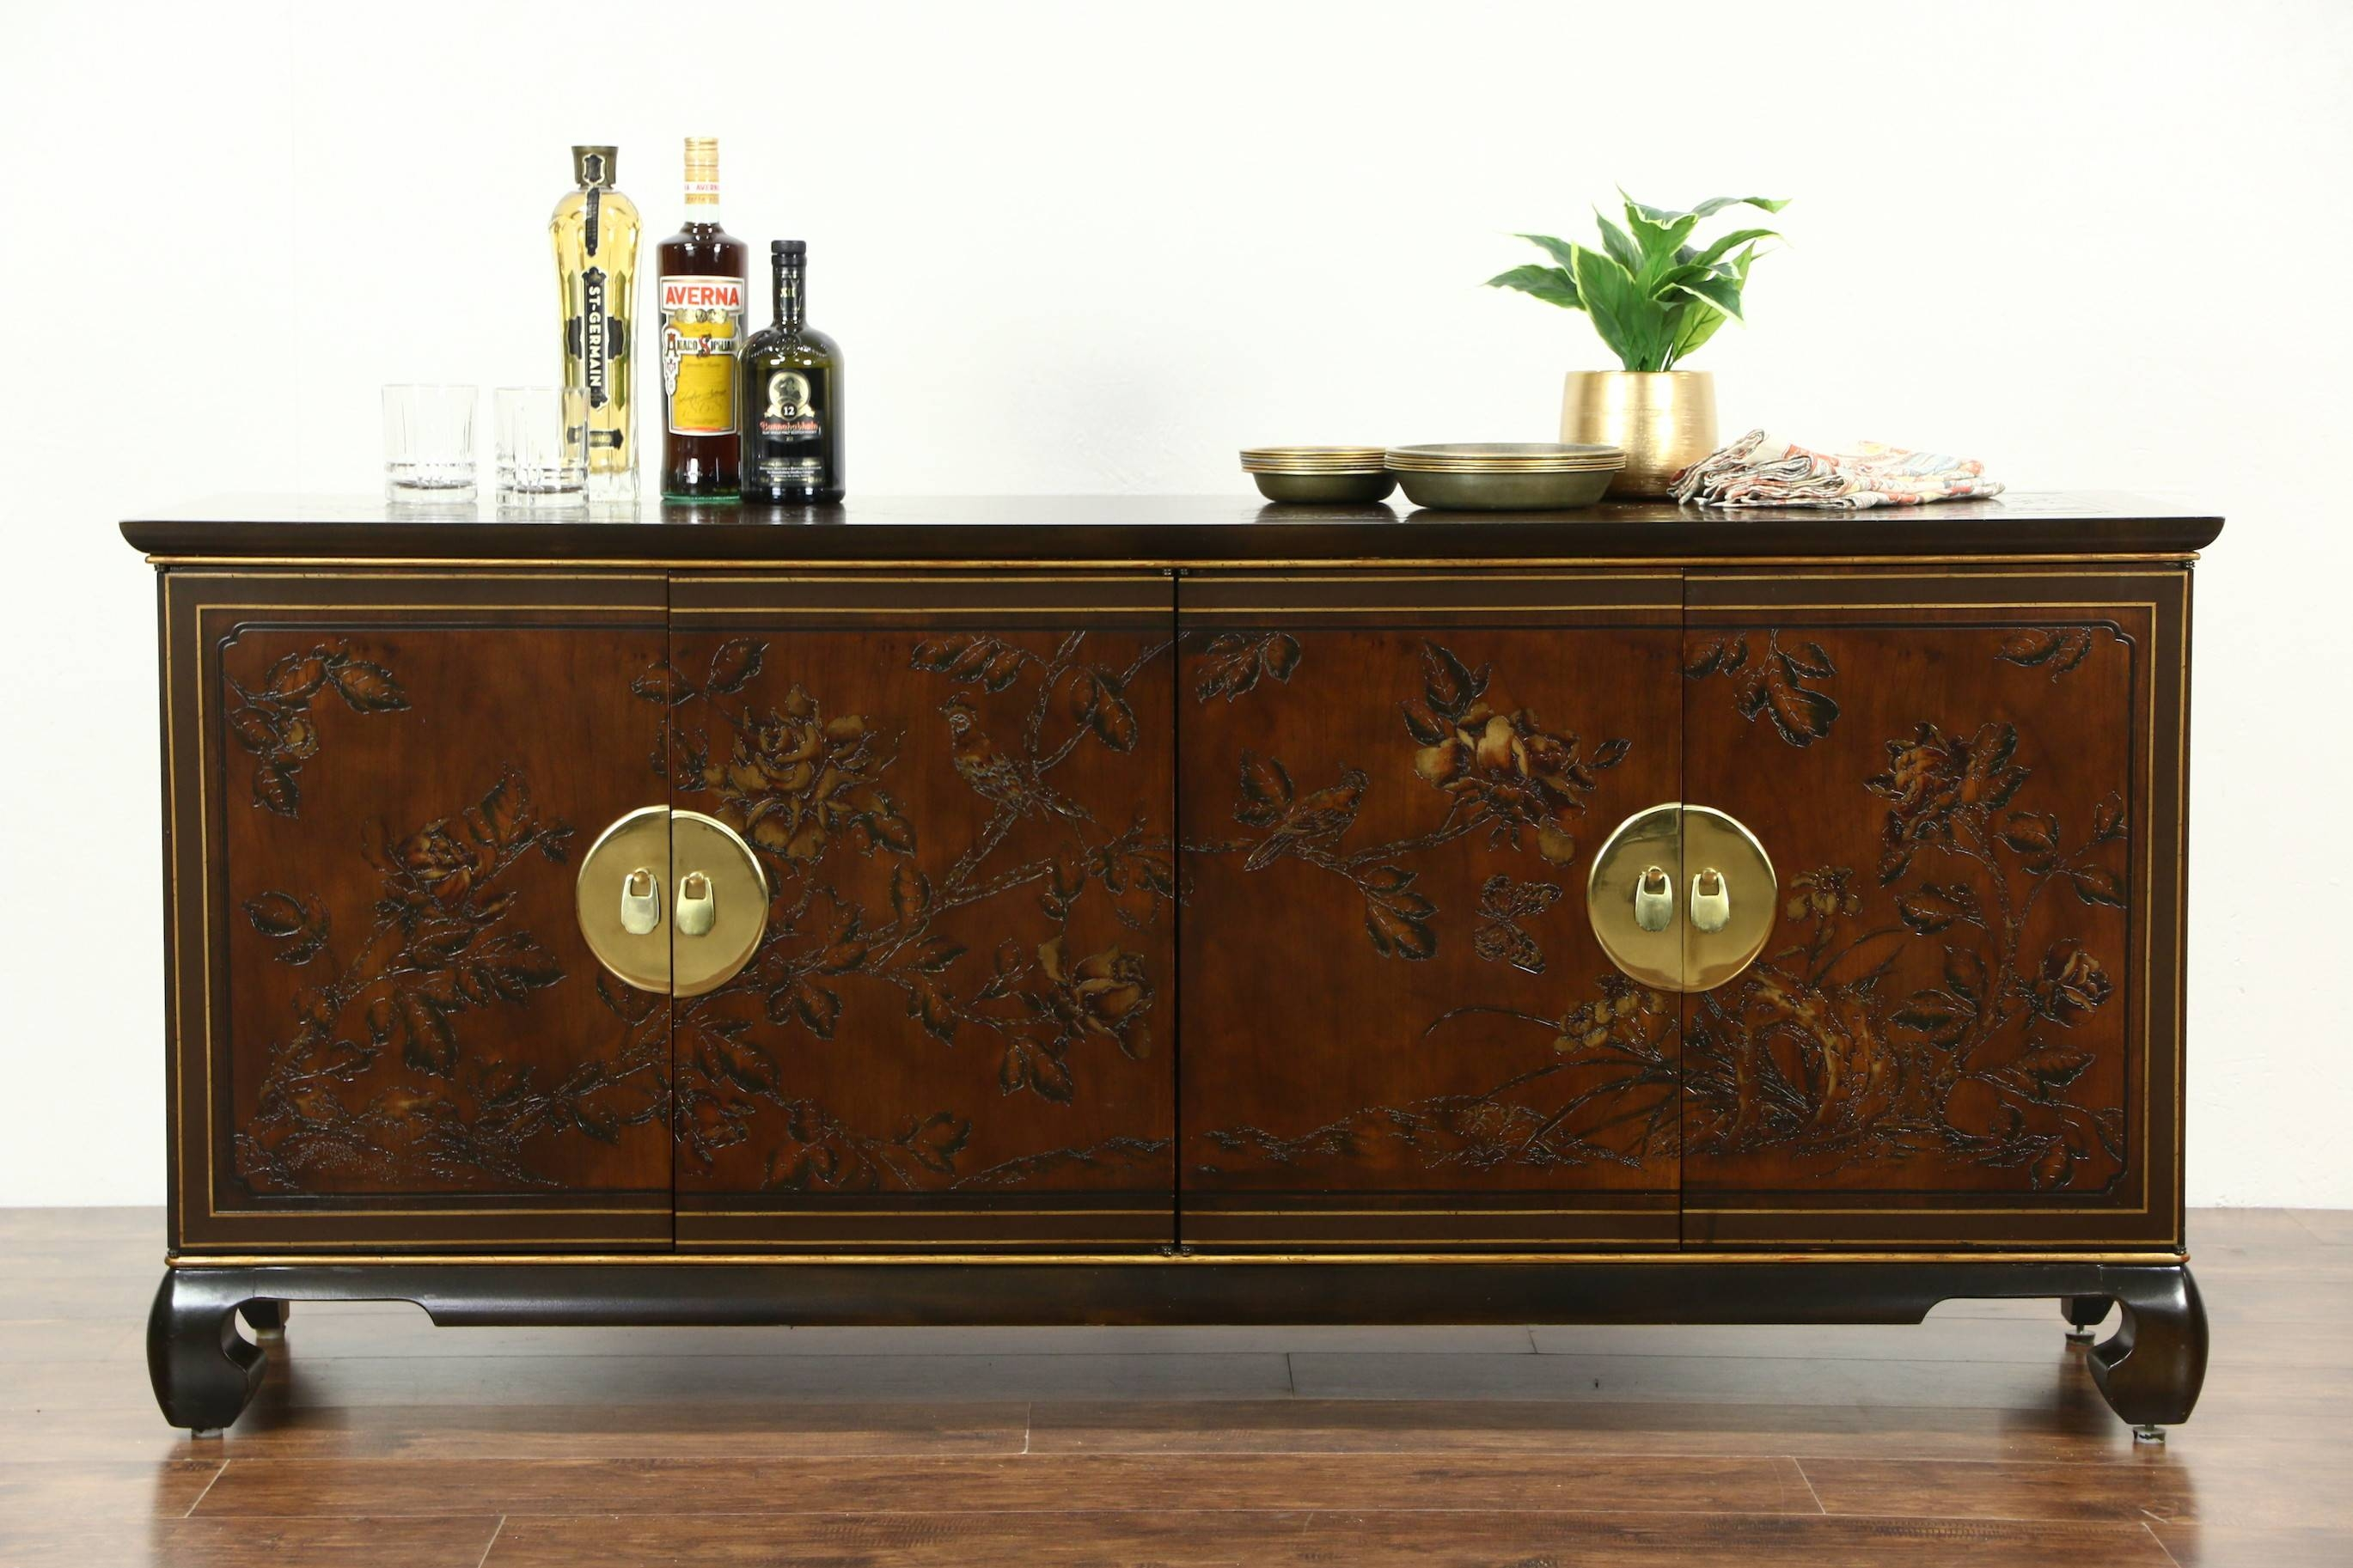 Sold - Drexel Heritage Connoisseur Chinese Vintage Sideboard for Hall Sideboards (Image 29 of 30)